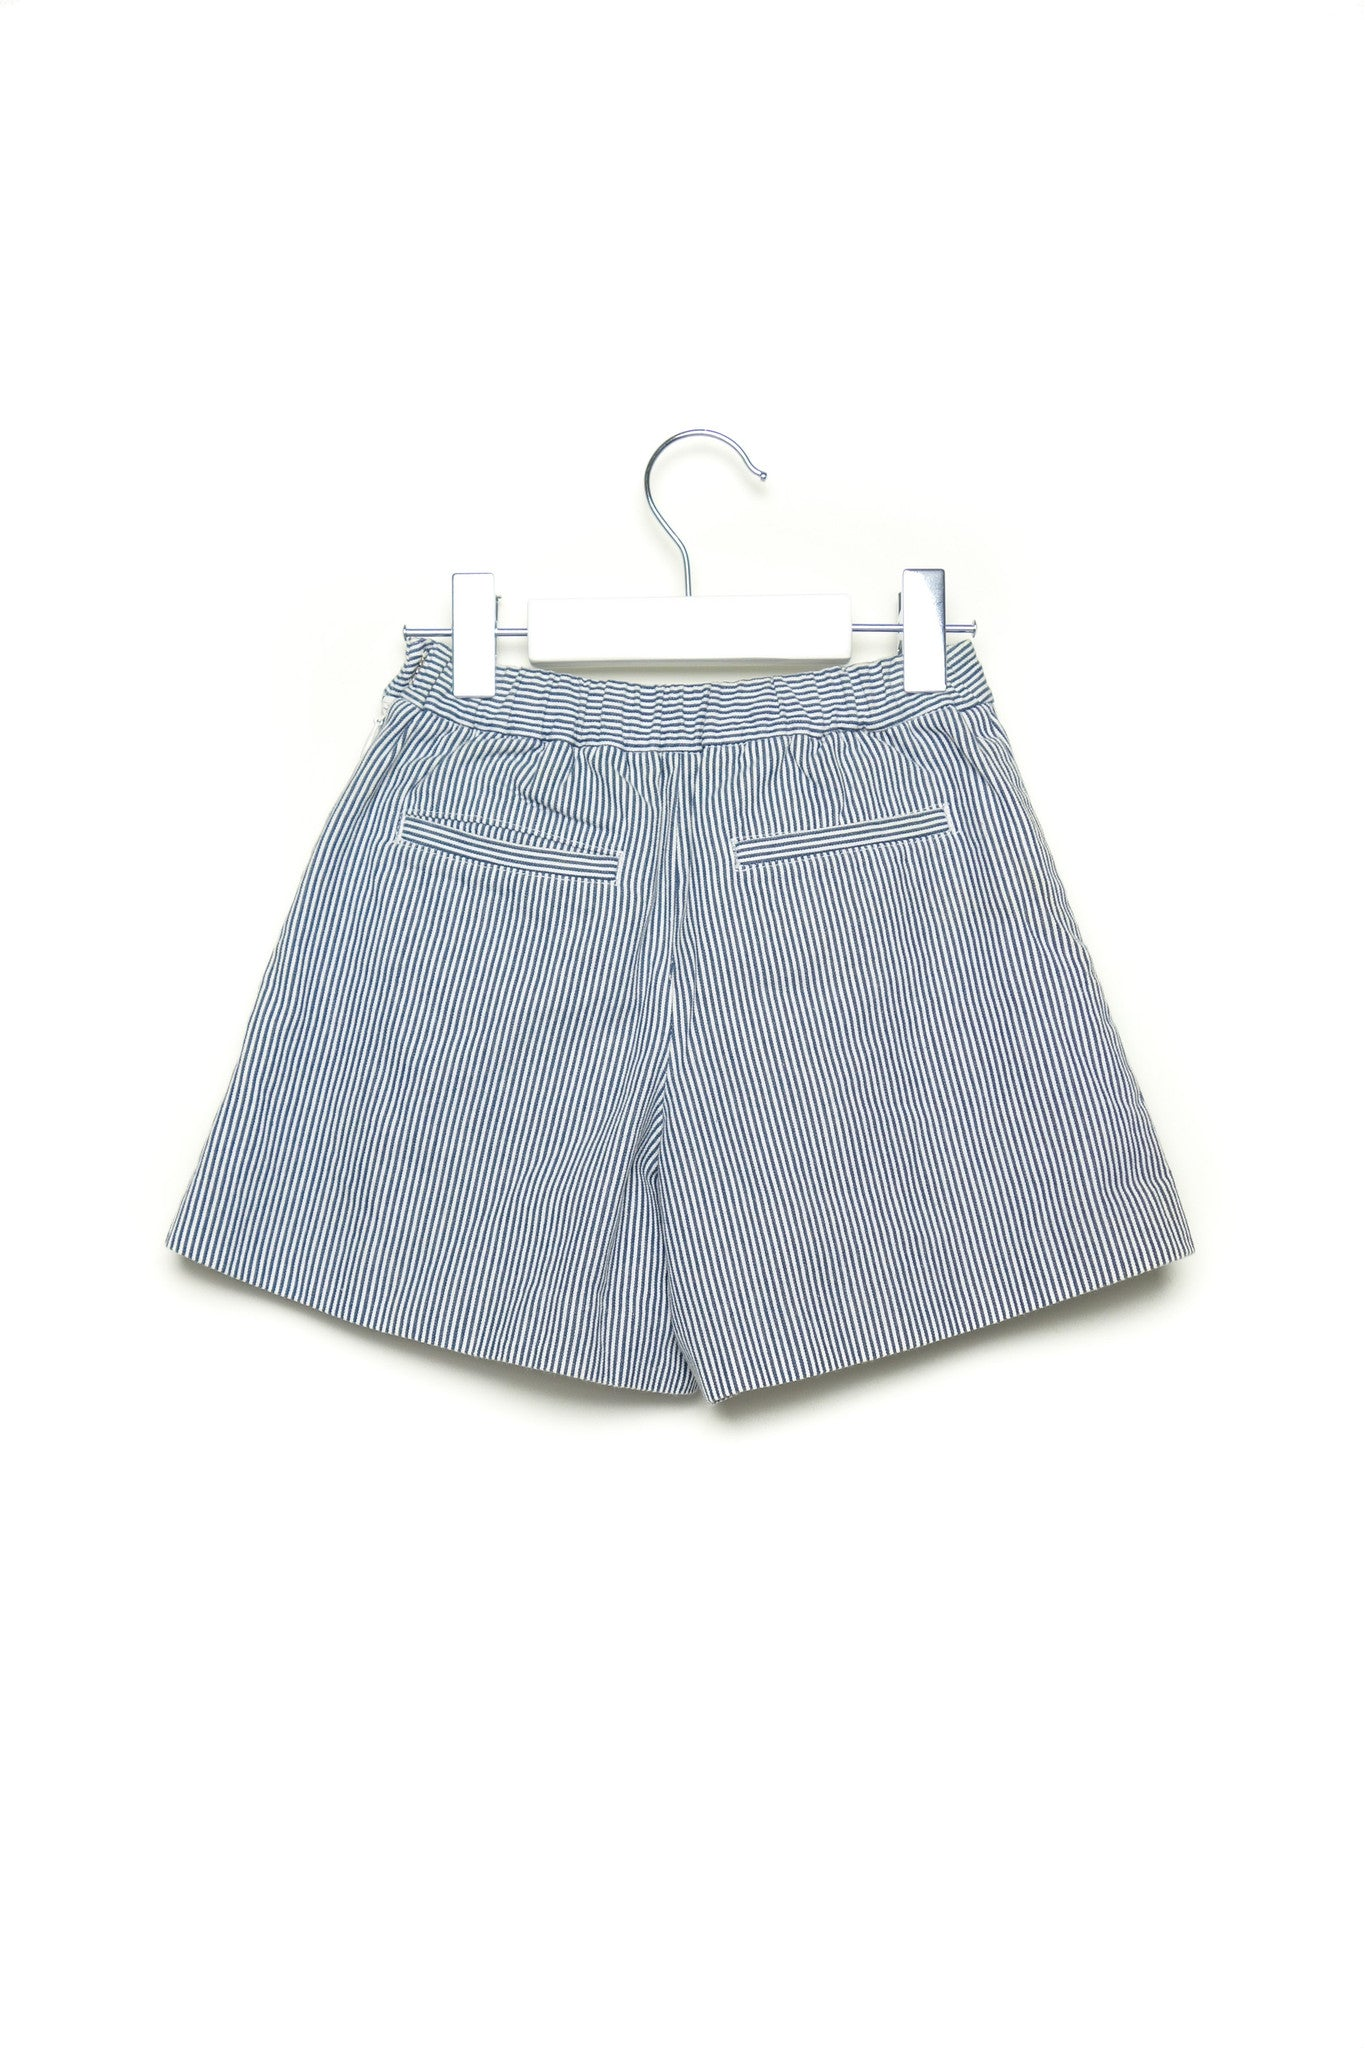 10001497 Nicholas & Bears Kids~Shorts 3T at Retykle